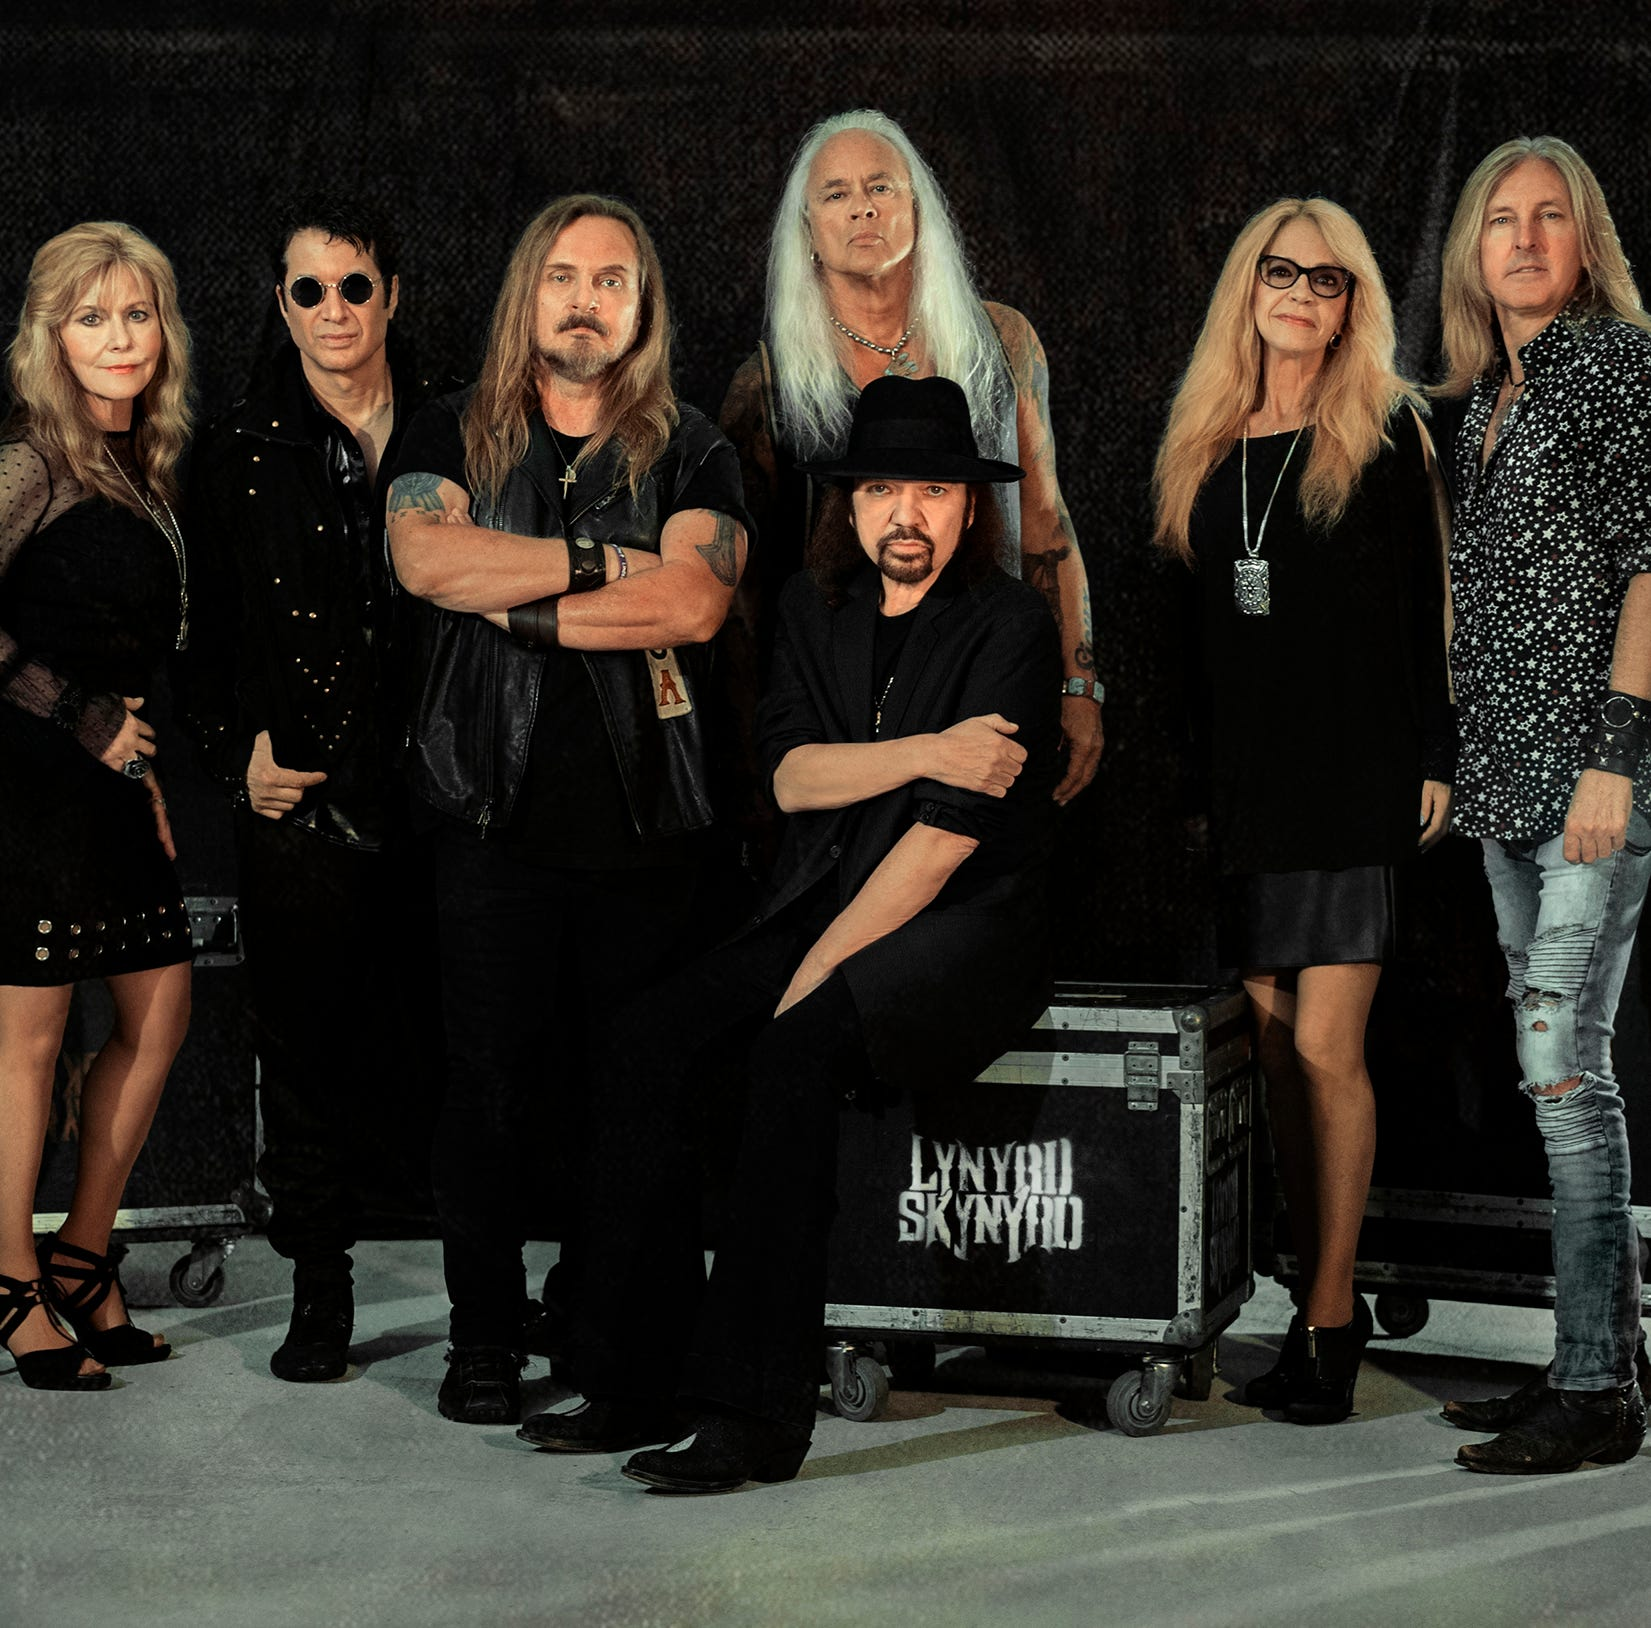 Lynyrd Skynyrd makes a stop at Premier Center on band's farewell tour